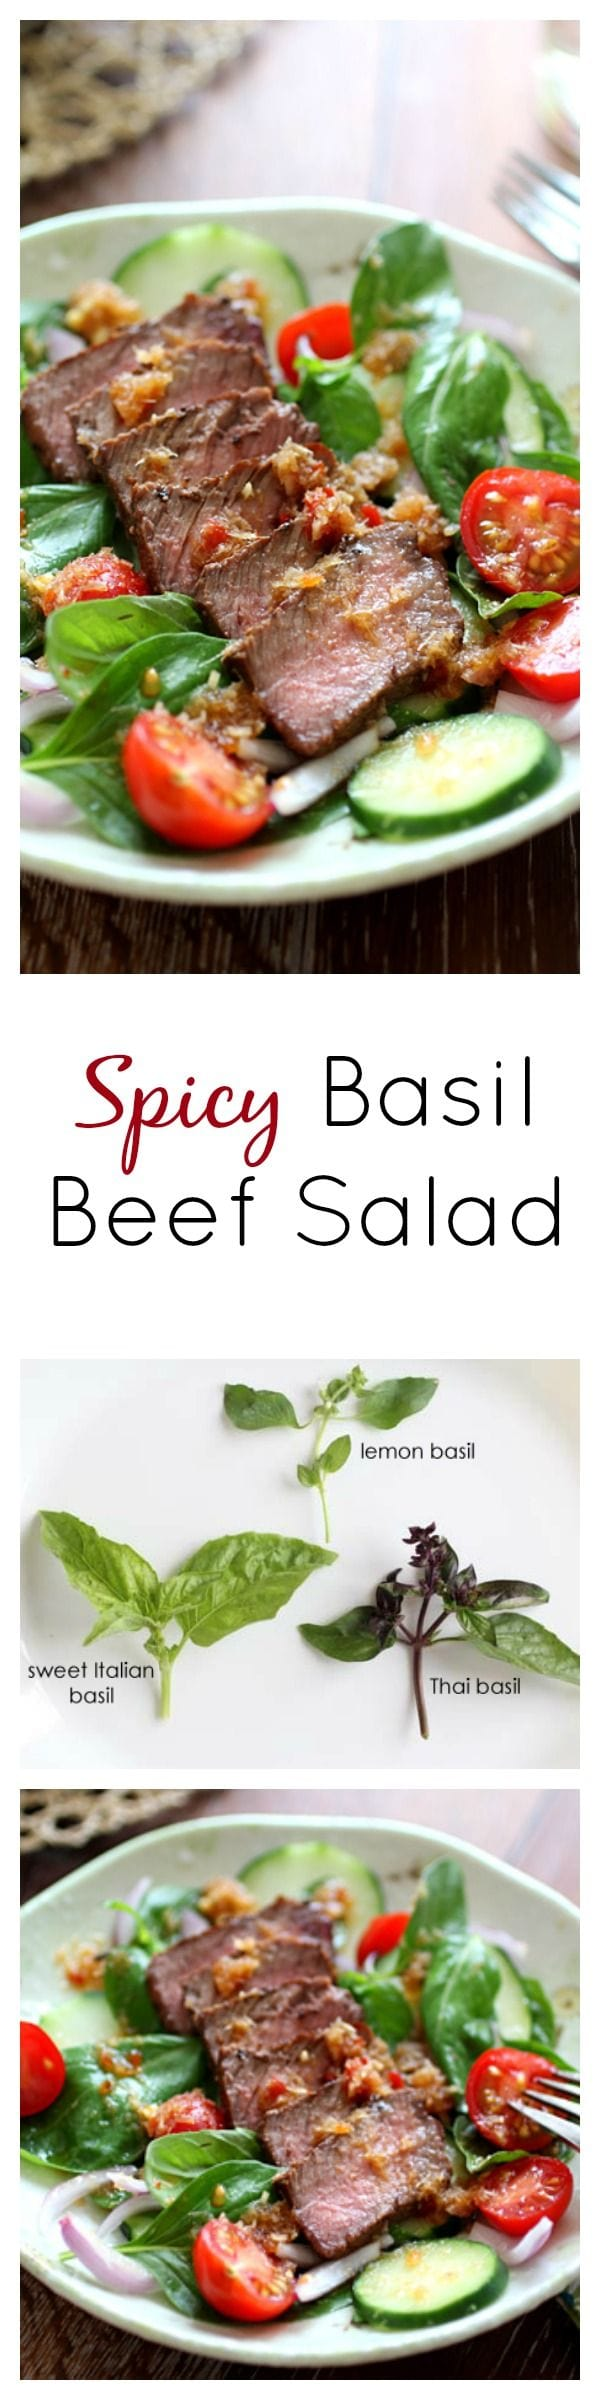 Spicy basil beef salad. Perfectly seared beef with basil leaves, tomatoes and a spicy Thai dressing, so healthy and yummy | rasamalaysia.com